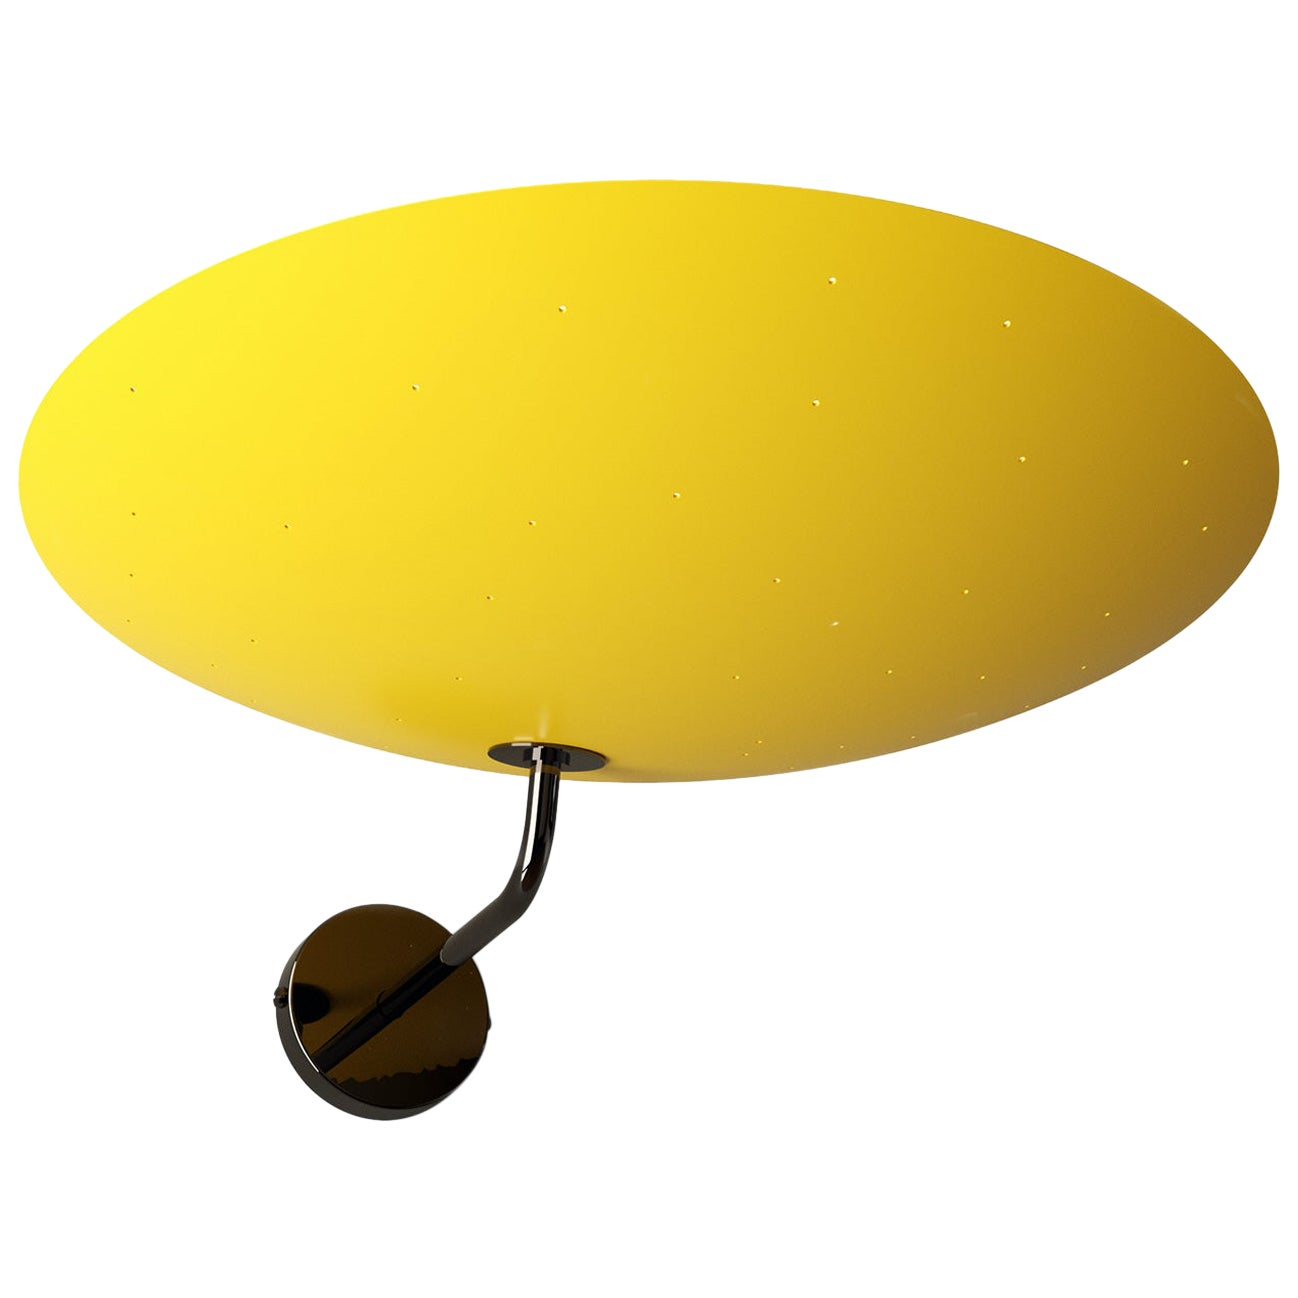 Pierre Disderot Model #2059 Large Perforated Wall Lamp in Yellow and Dark Chrome